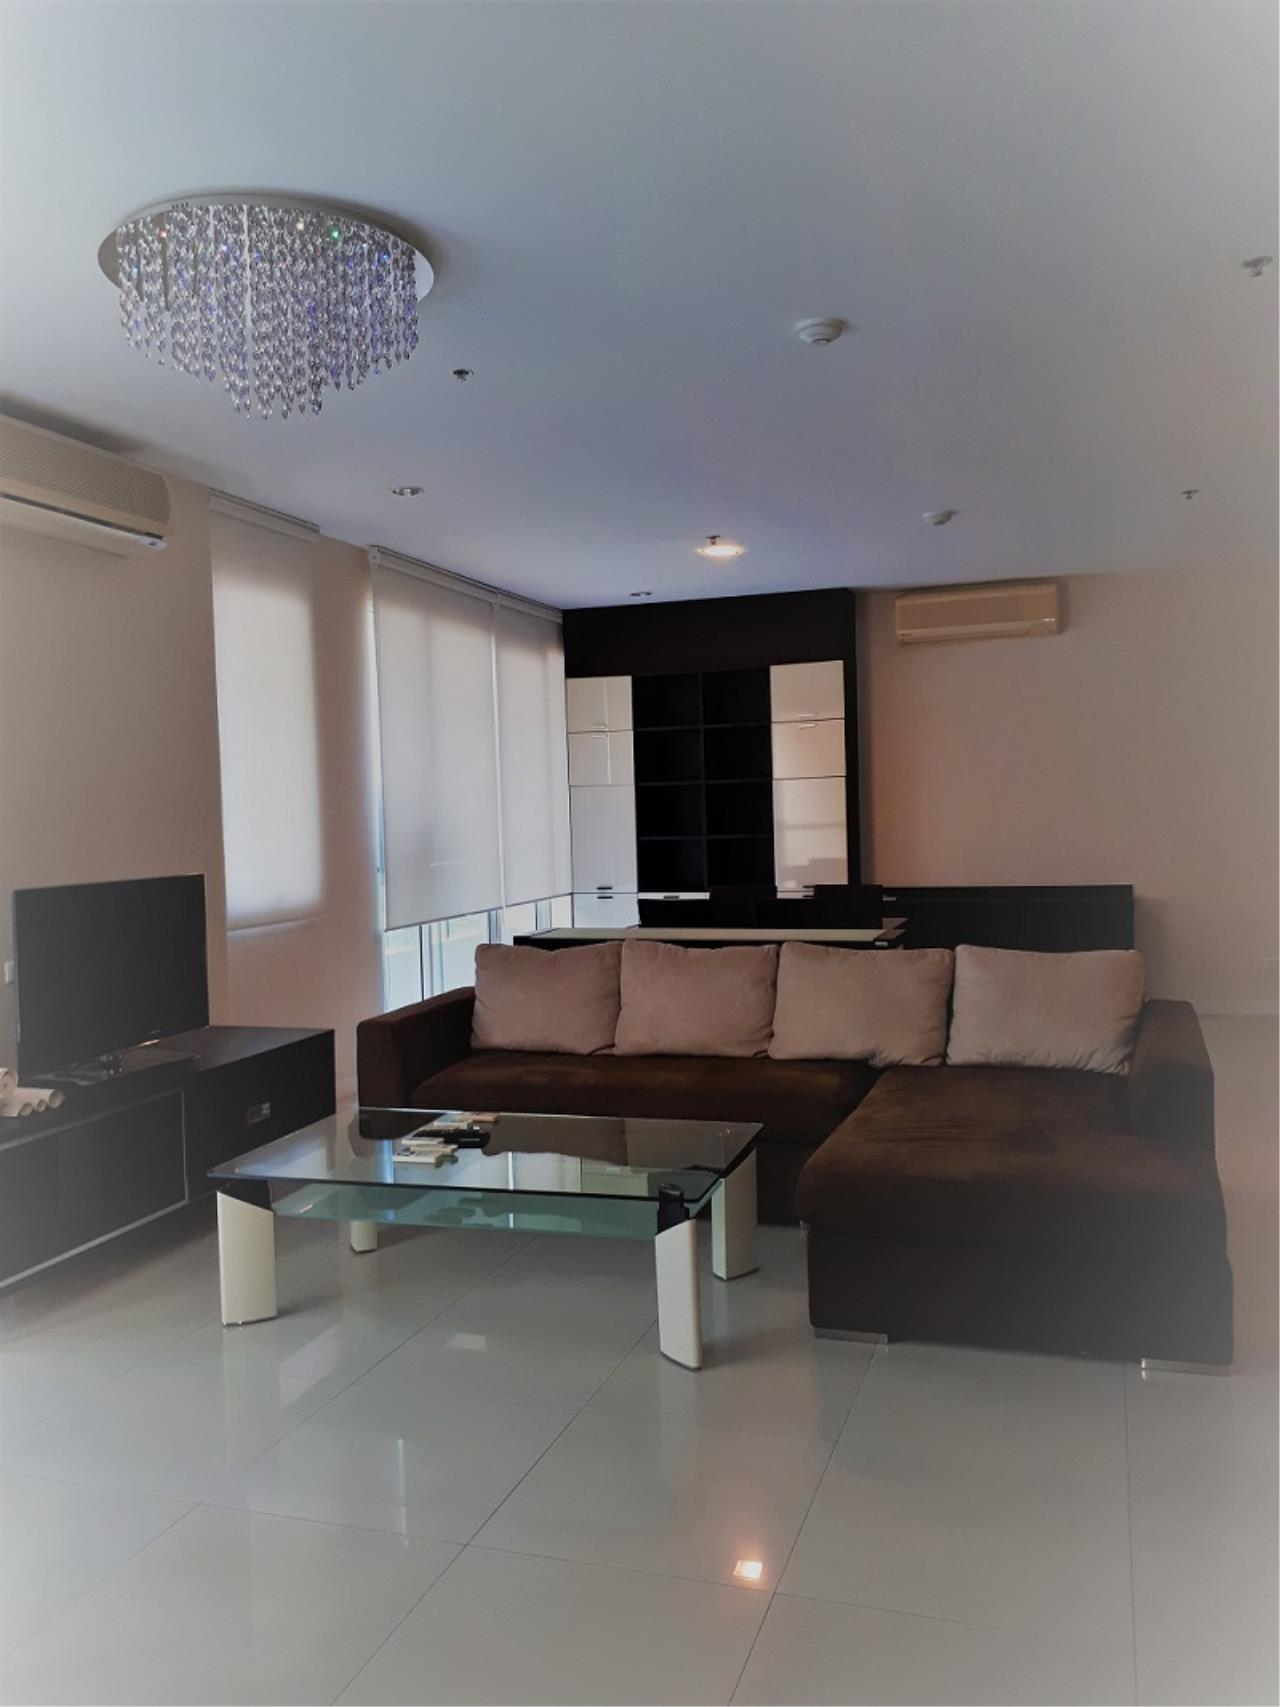 RE/MAX CondoDee Agency's Spacious 3 Bedrooms Condo @ Sukhumvit 11 6